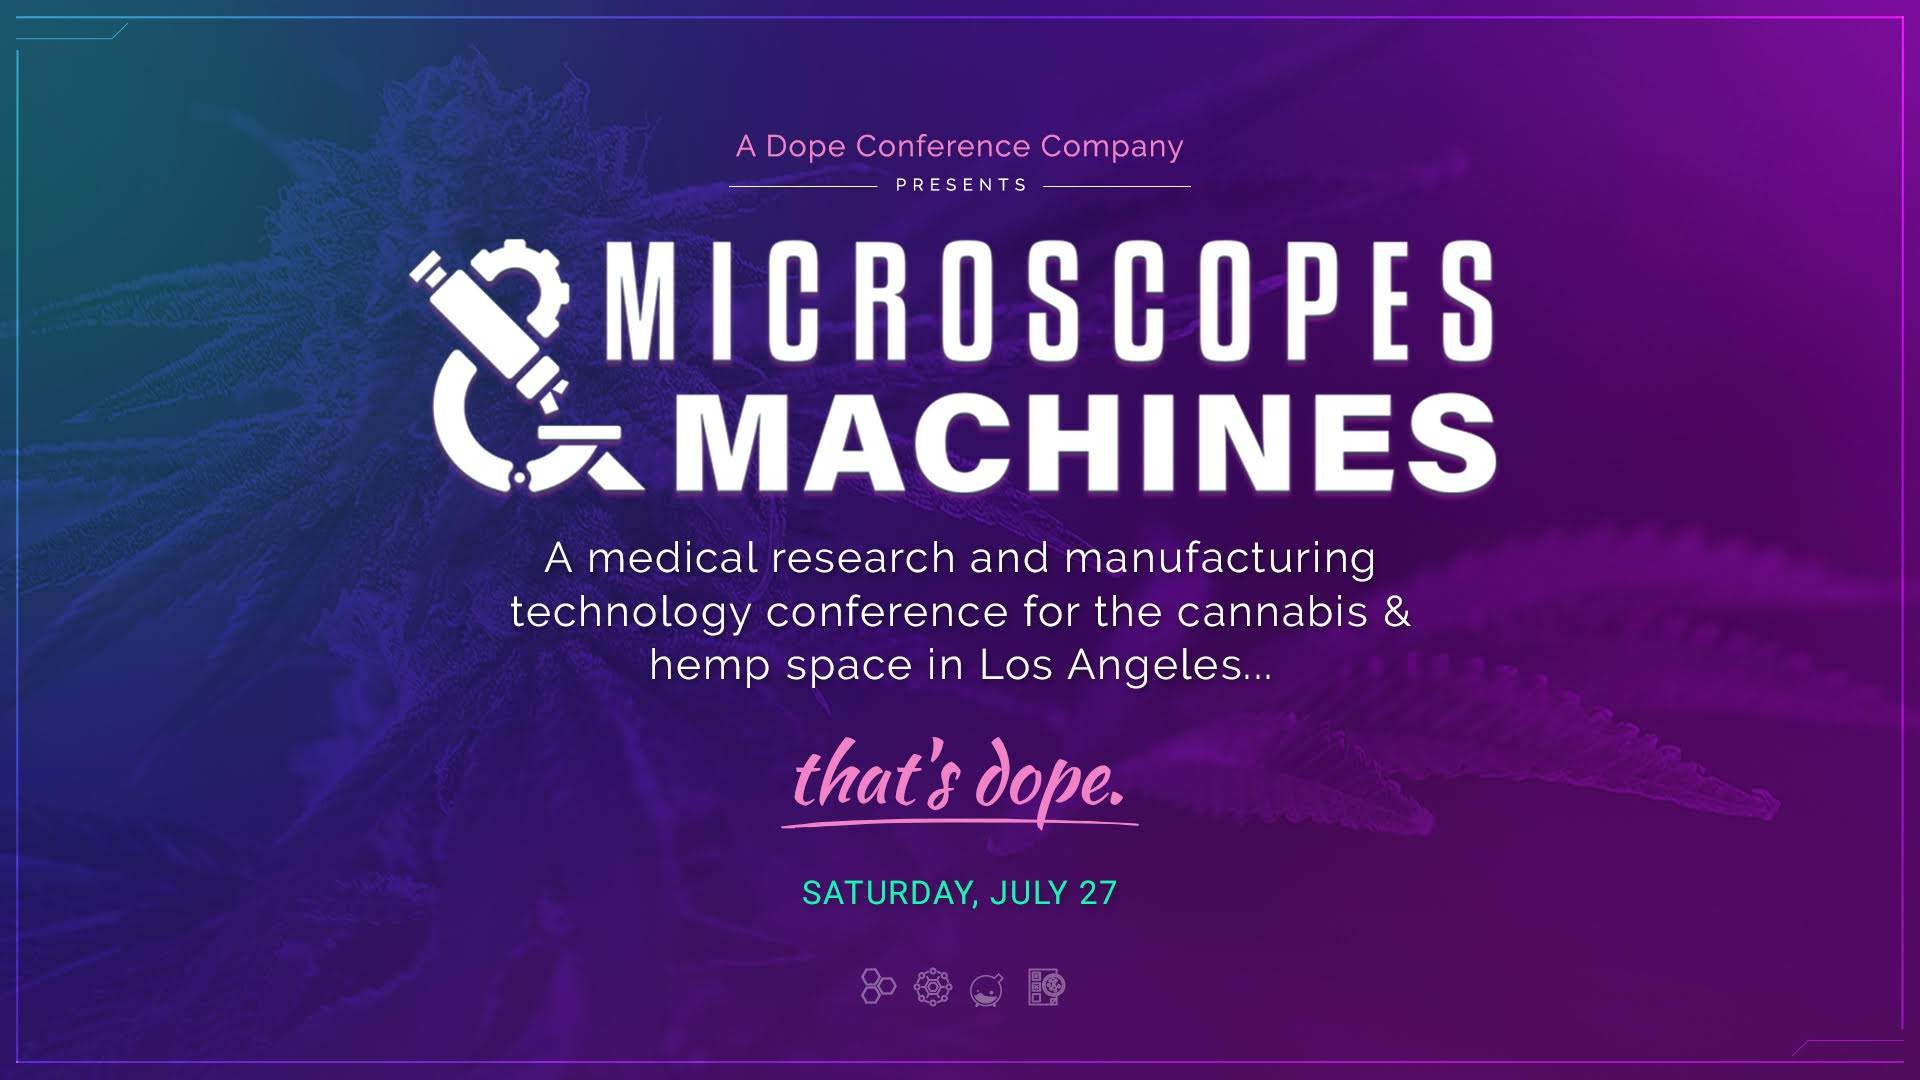 Microscopes and Machines